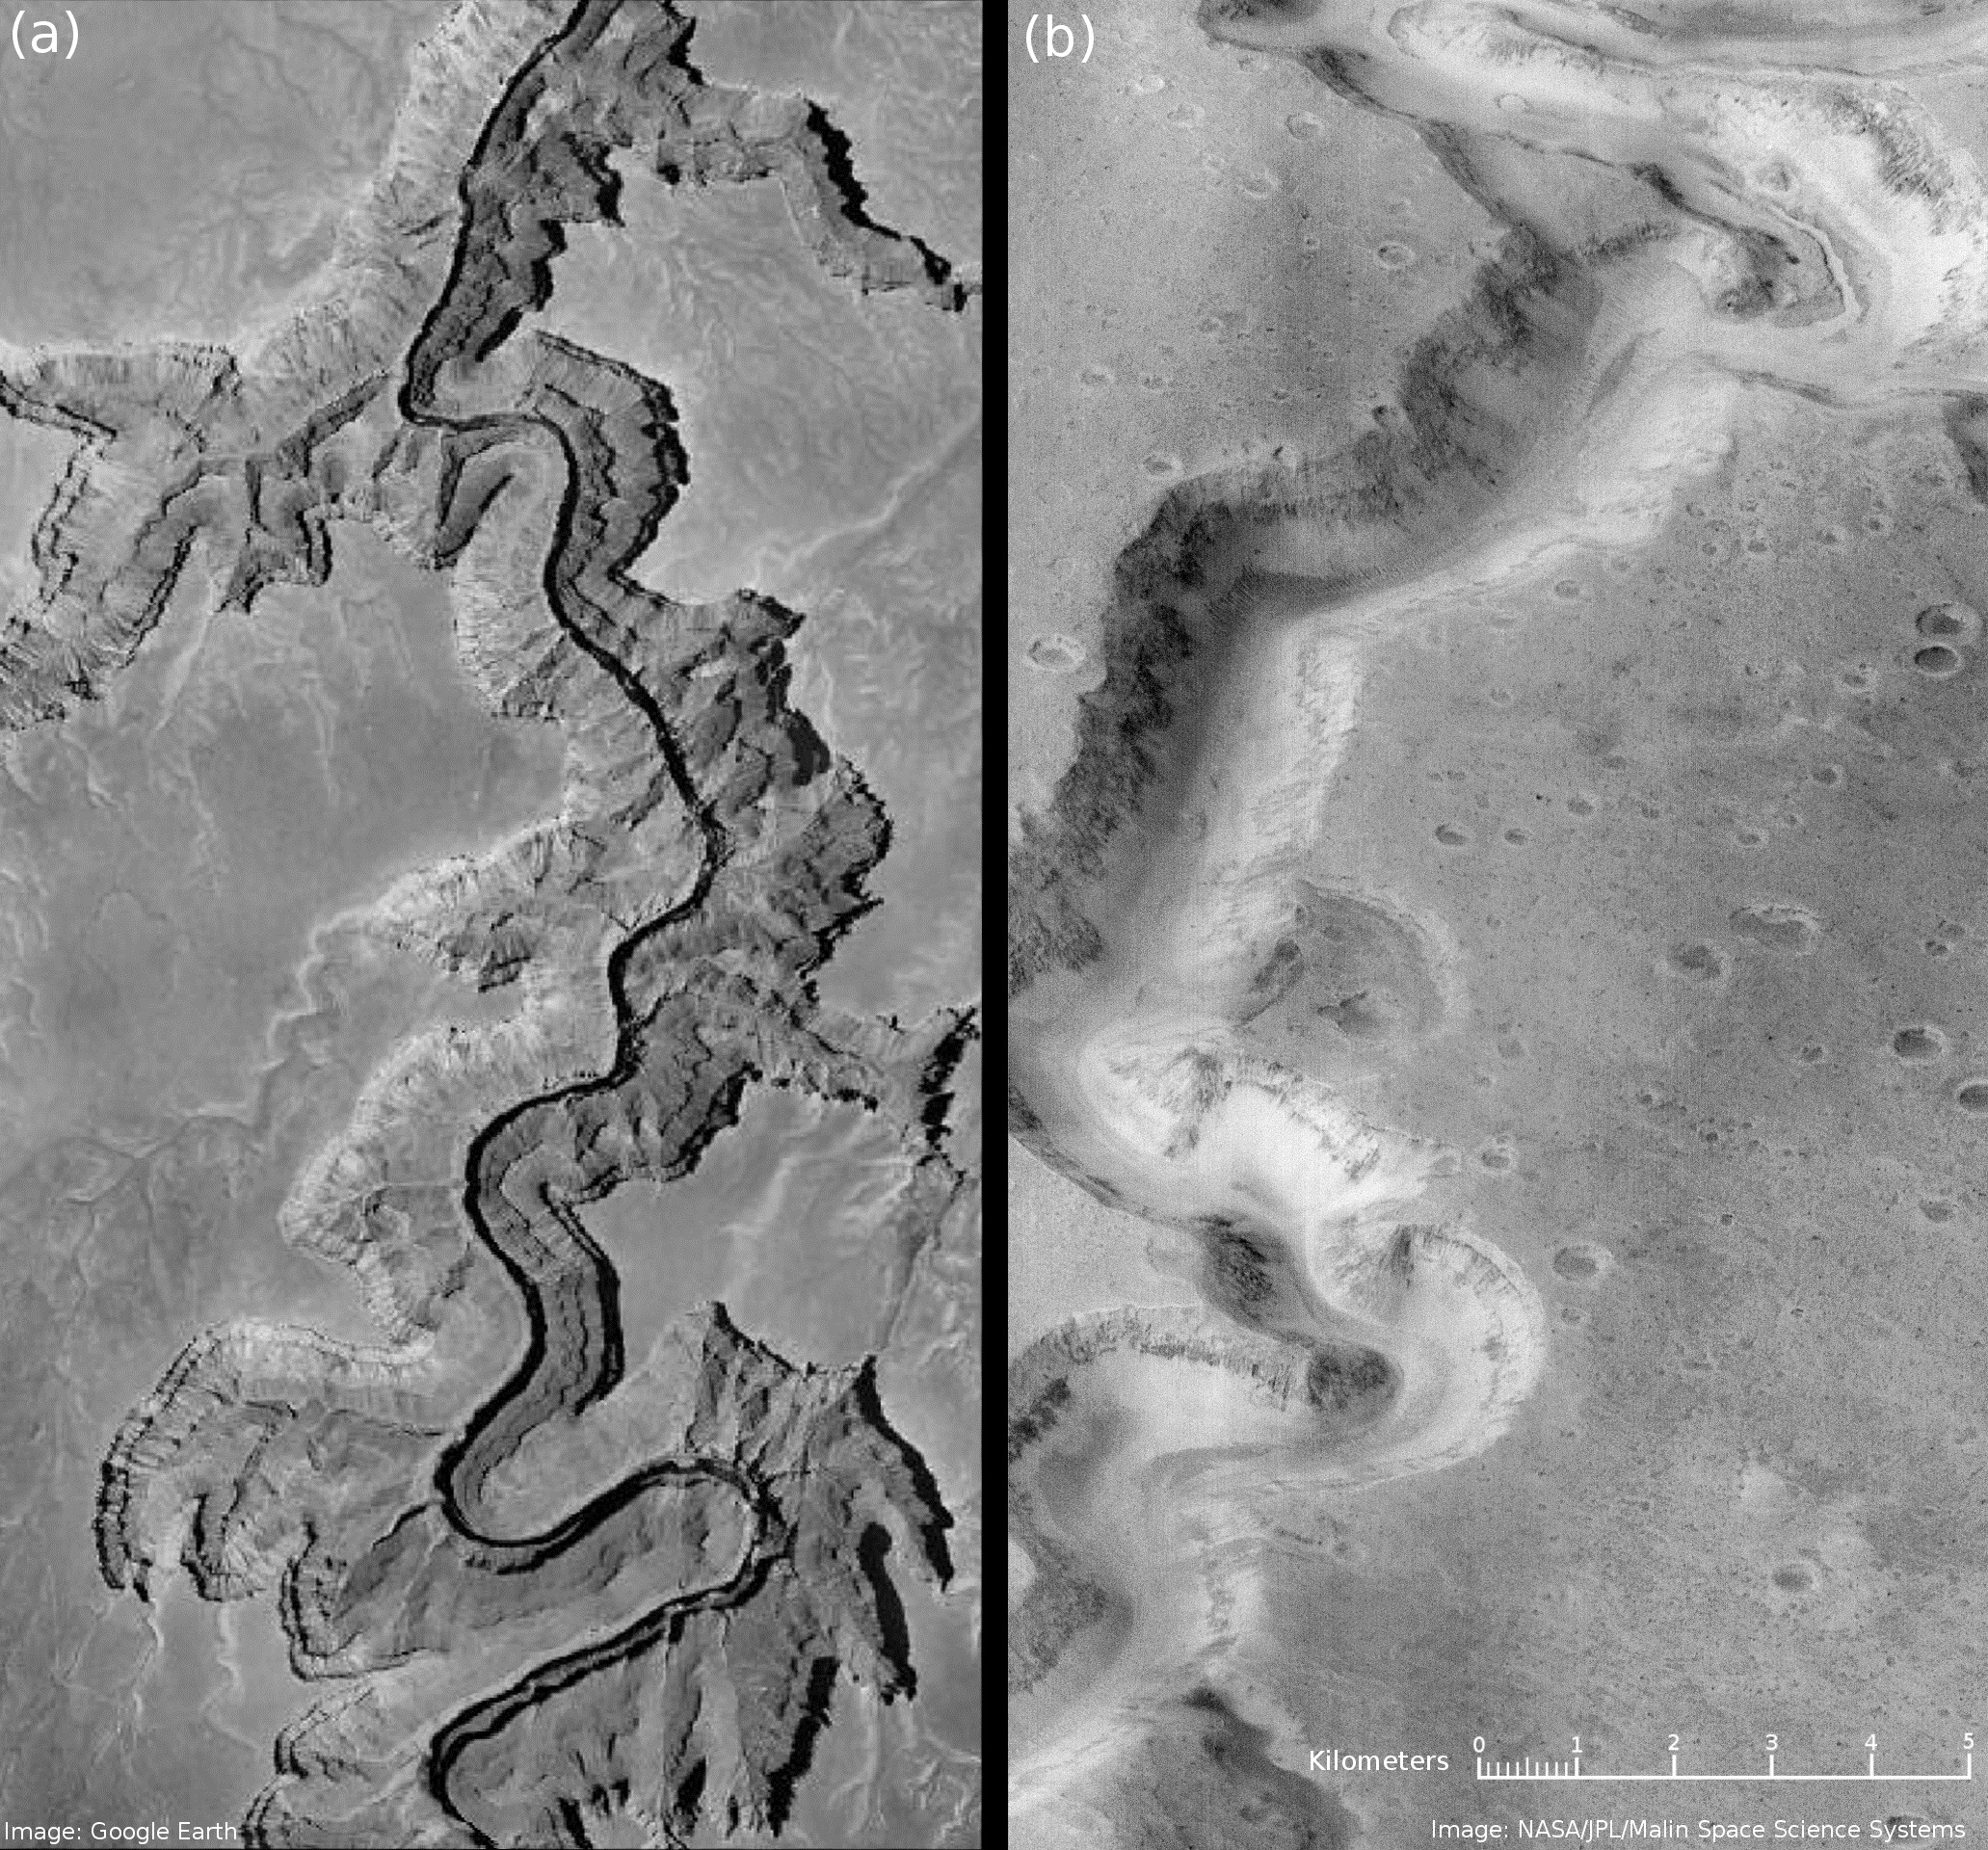 Water features on Mars